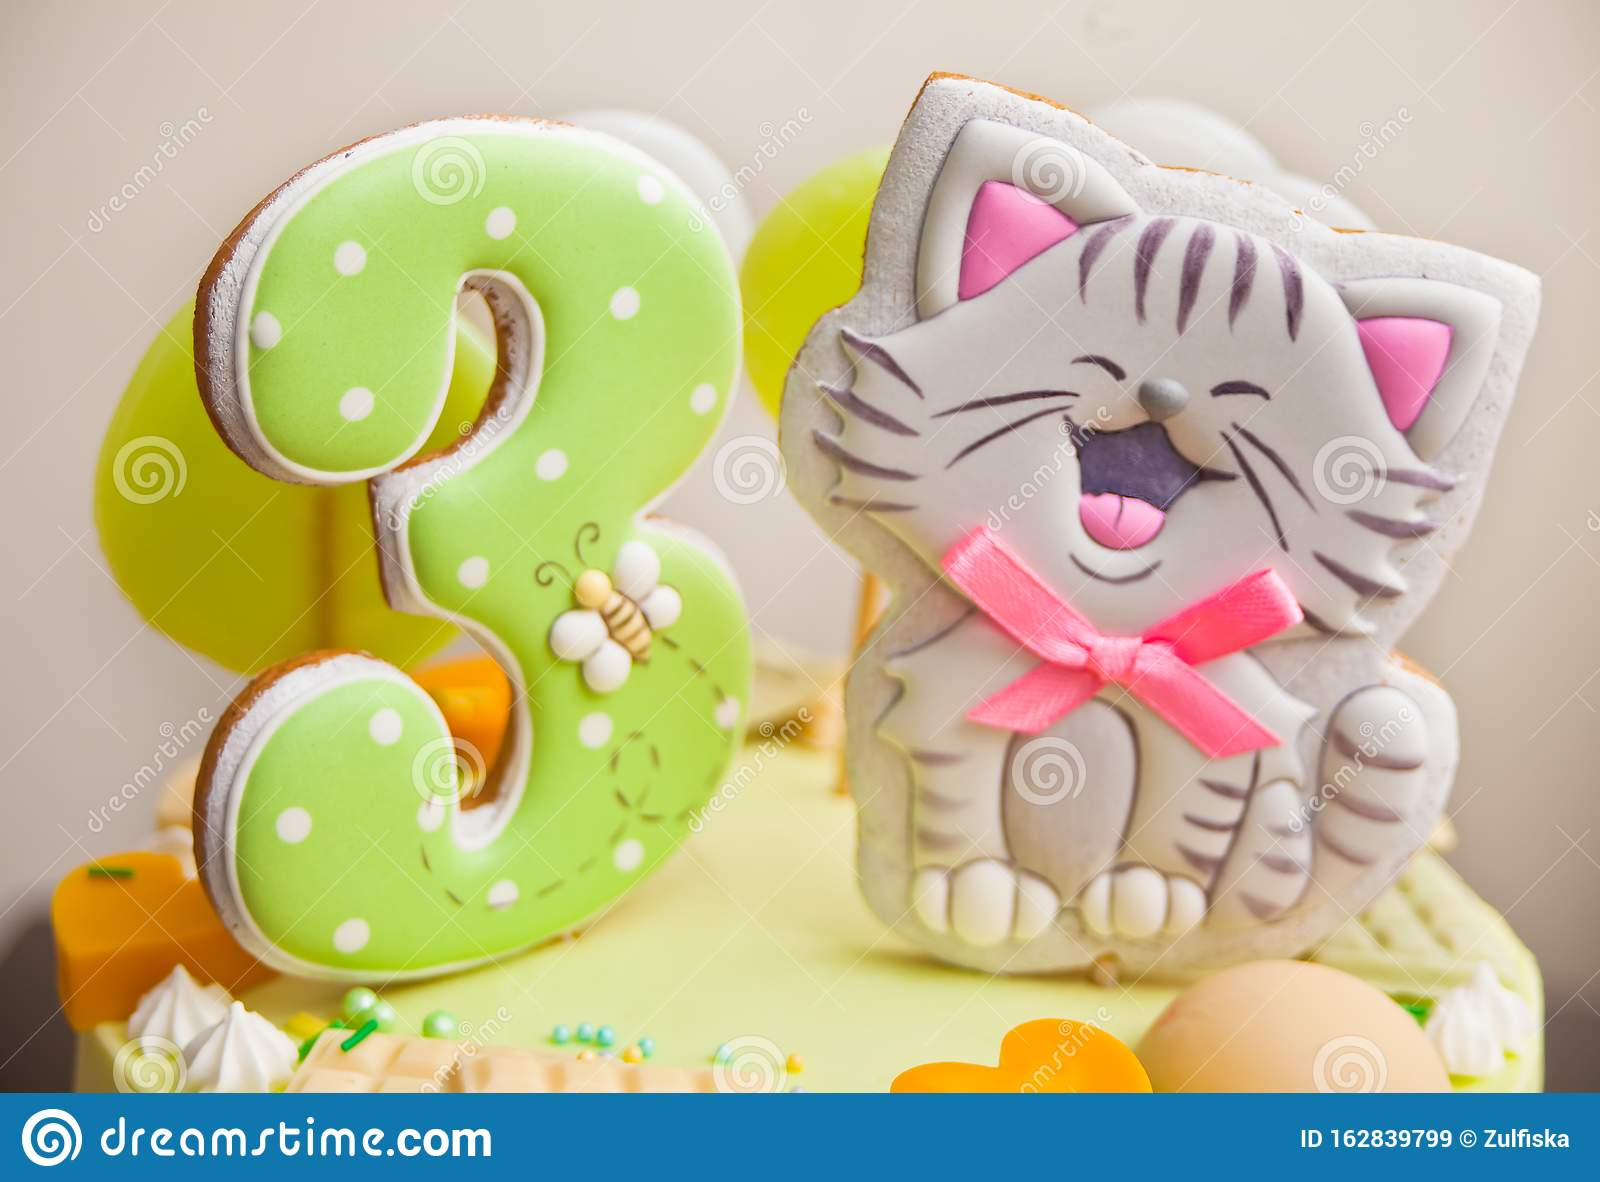 Outstanding Close Up Birthday Cake For Little Girl Decorated Funny Cookies Funny Birthday Cards Online Alyptdamsfinfo